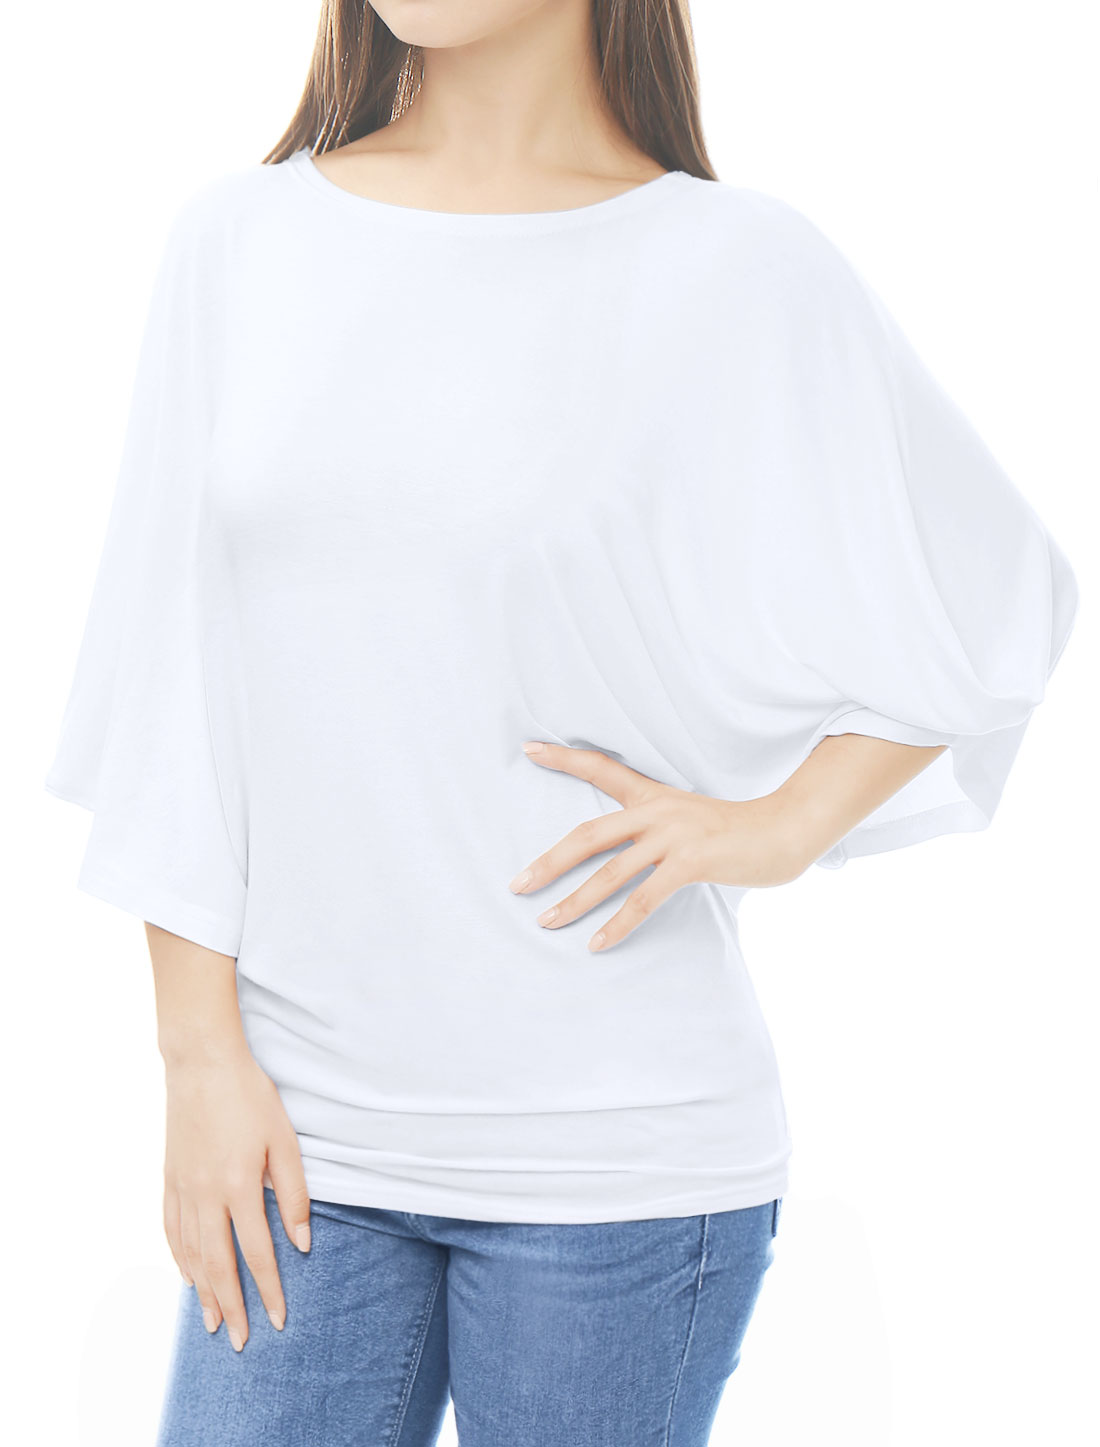 Women Boat Neck Batwing Sleeves Oversized Tunic Top White M